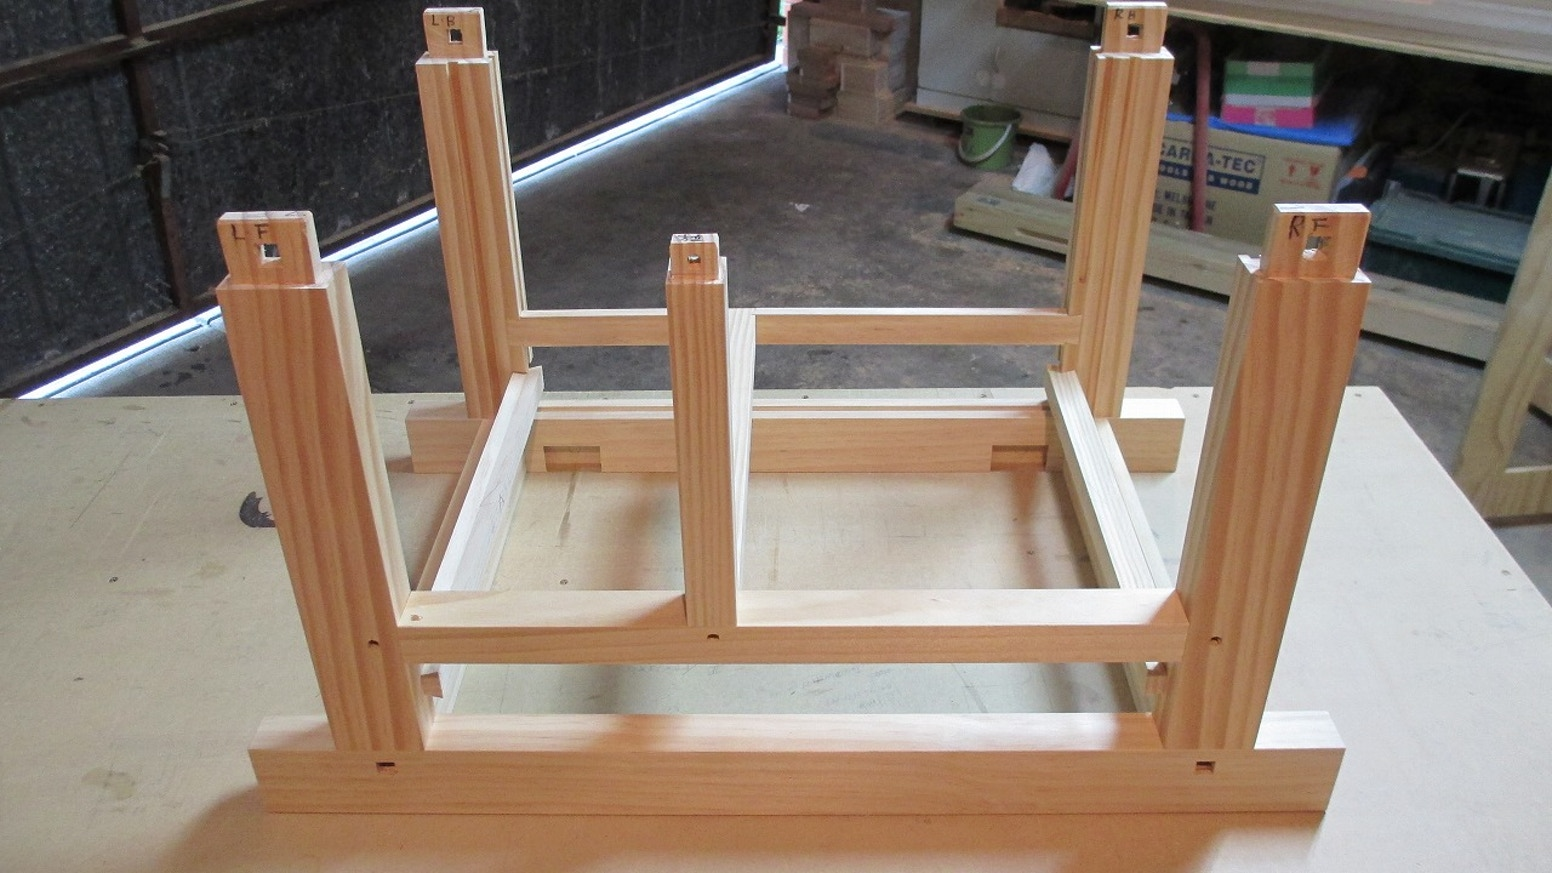 Online japanese woodworking courses by diy japanese joinery the first ever full fledged japanese woodworking video courses which you can learn real techniques from real specialists solutioingenieria Choice Image